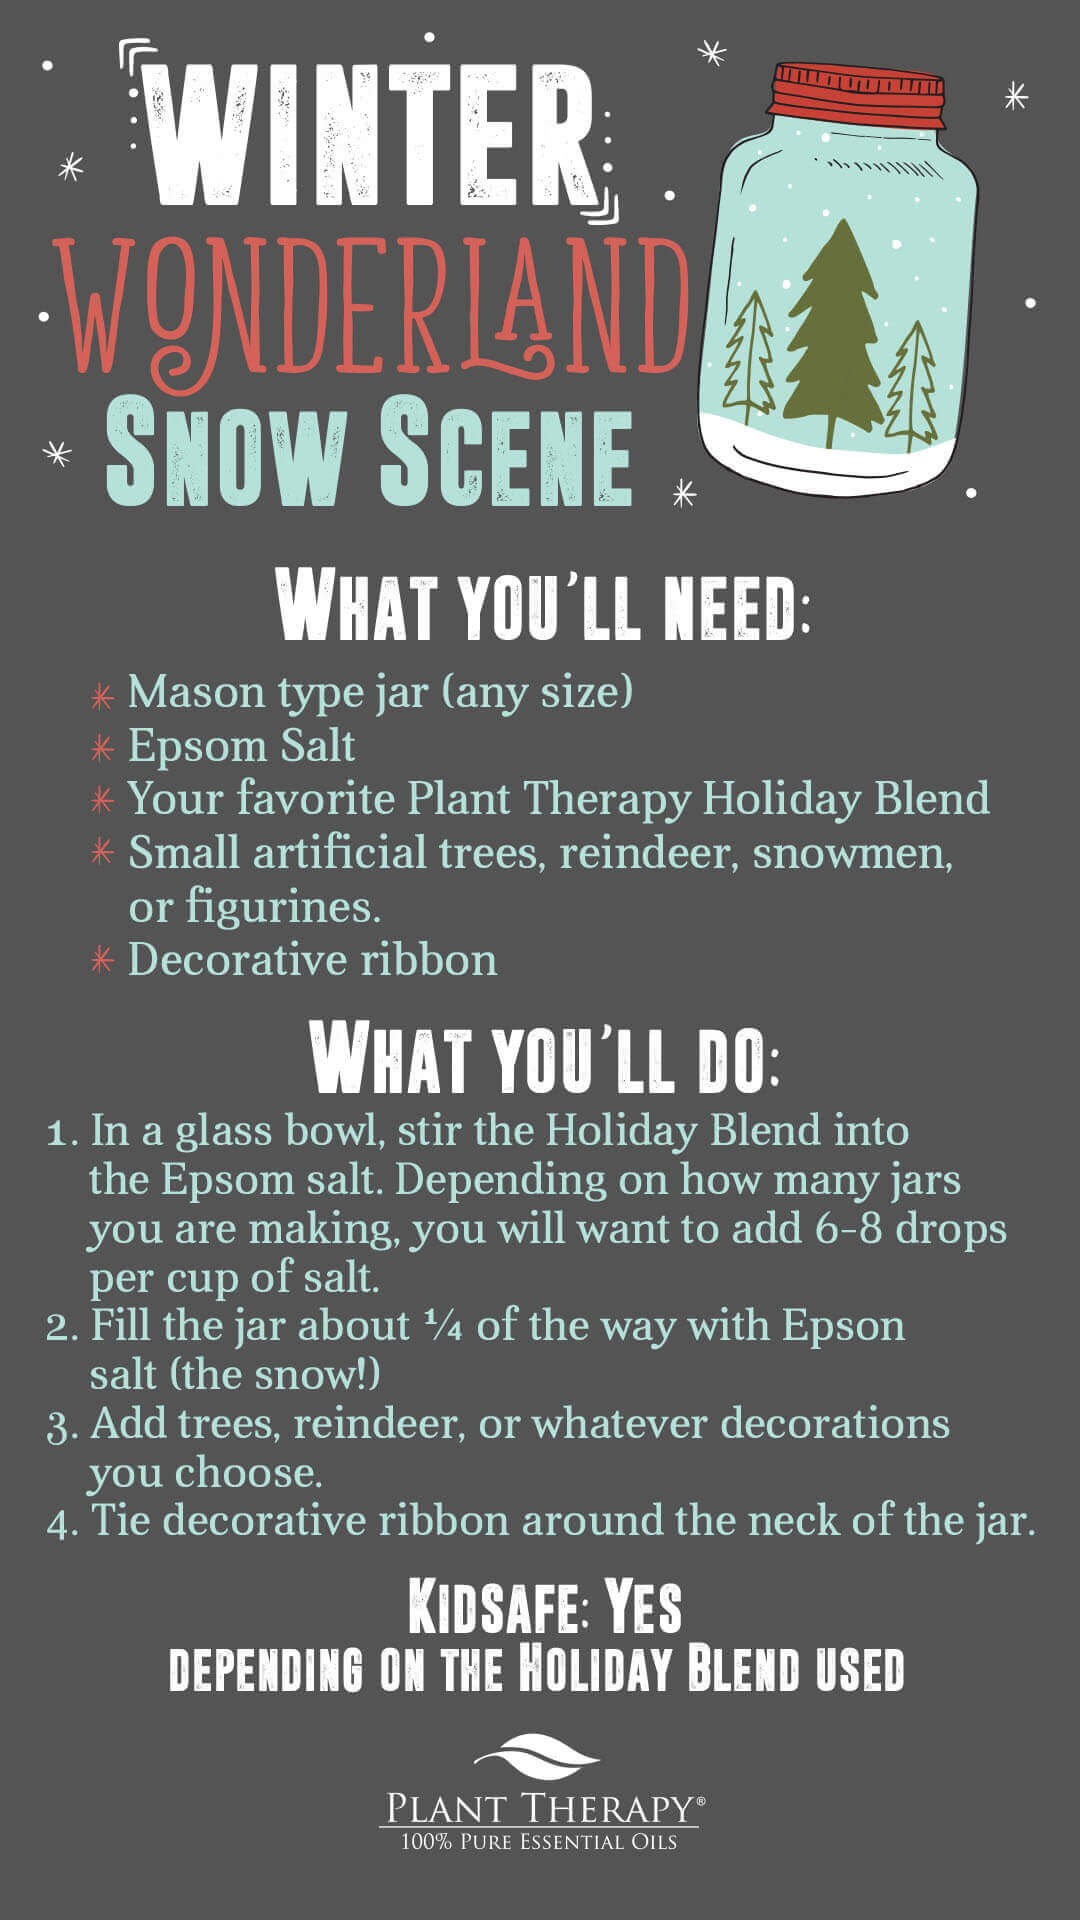 Winter Wonderland snow scene plant therapy DIY with Holiday Blends